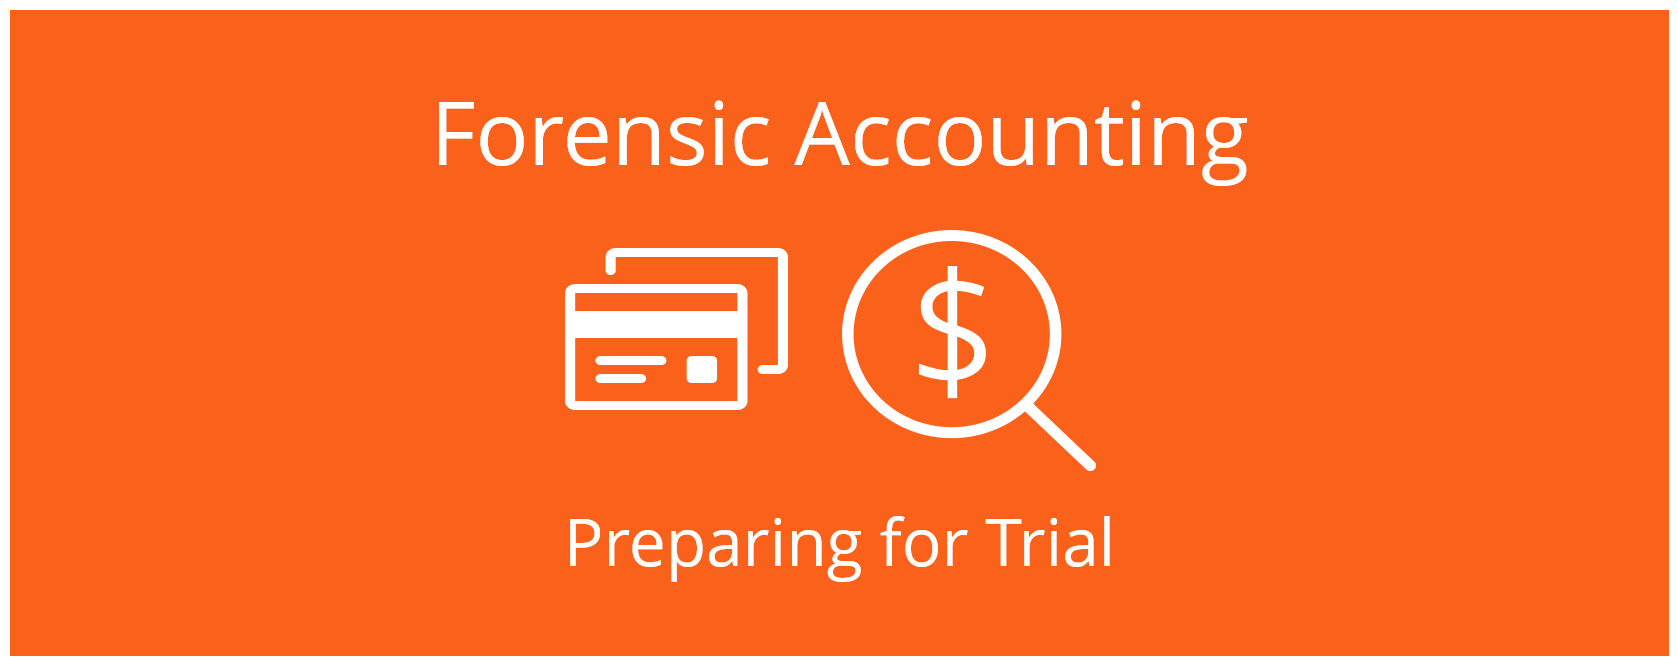 Forensic Accounting Definition Examples Preparing For Litigation